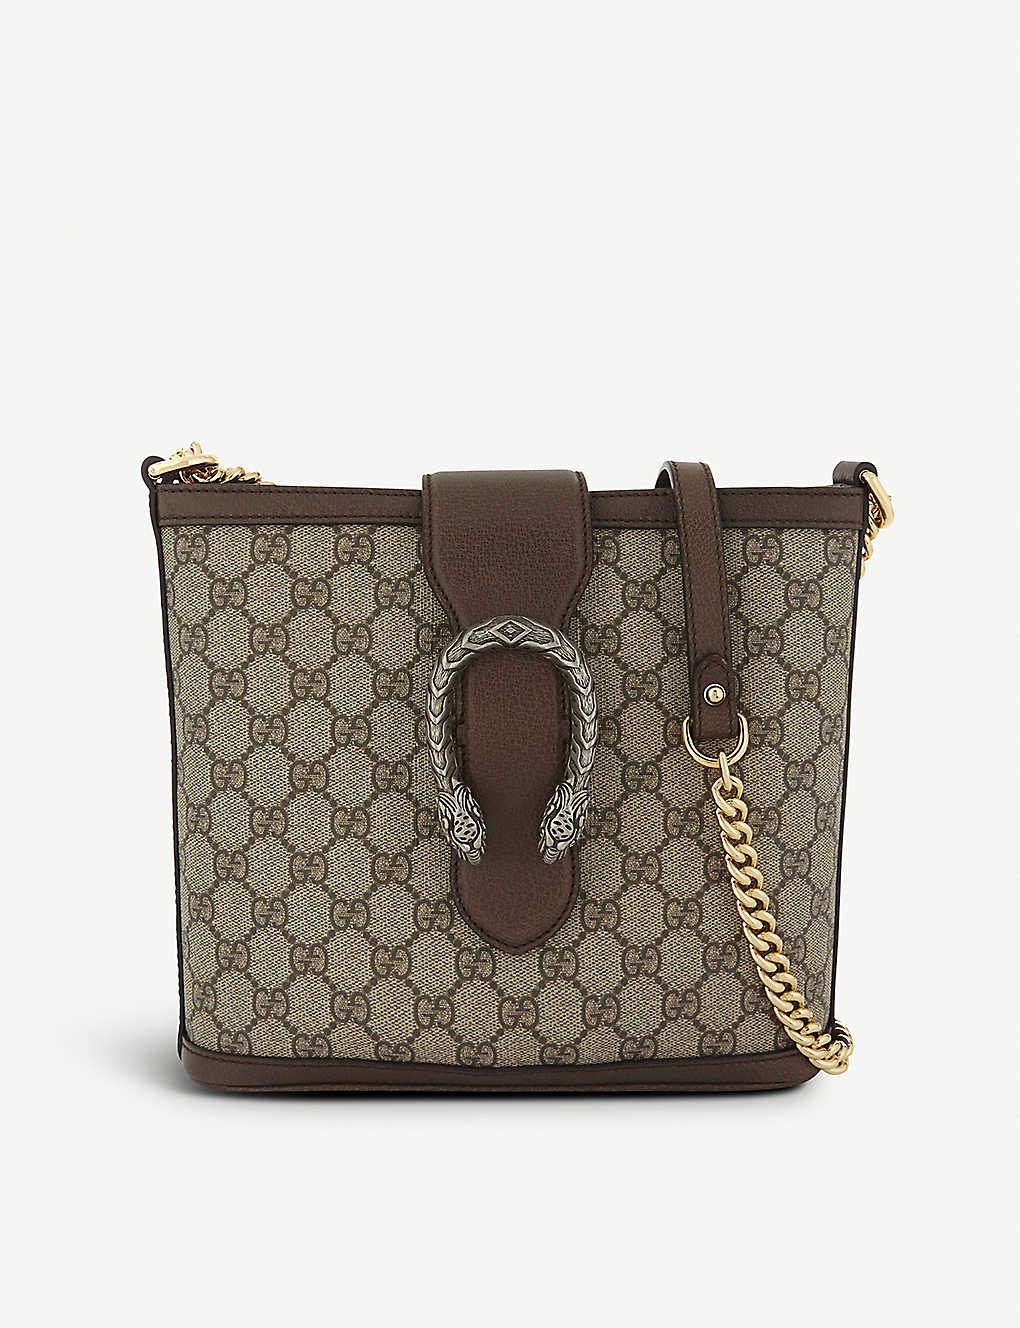 0354b683d62 GUCCI - Dionysus GG Supreme bucket bag